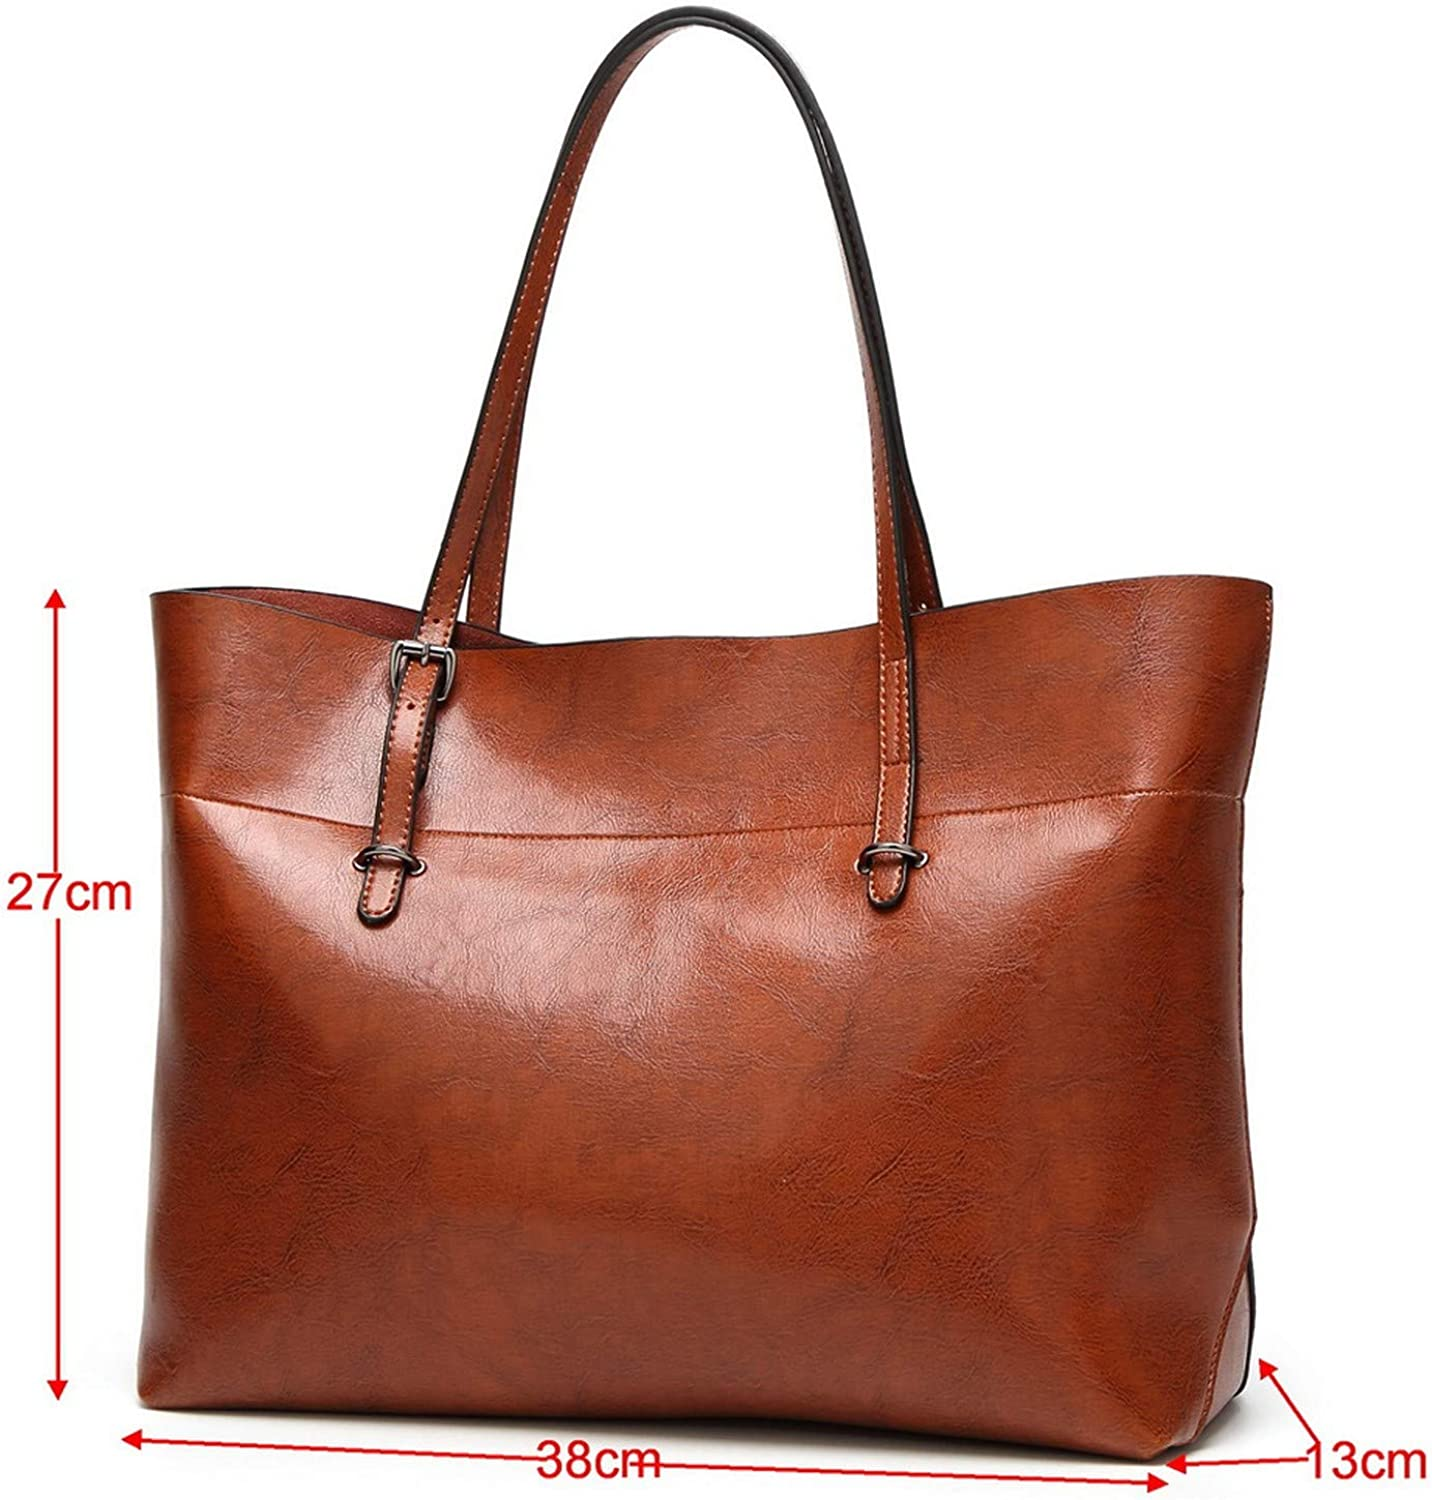 Oil wax leather Handbags Women Bags simple design leather bag